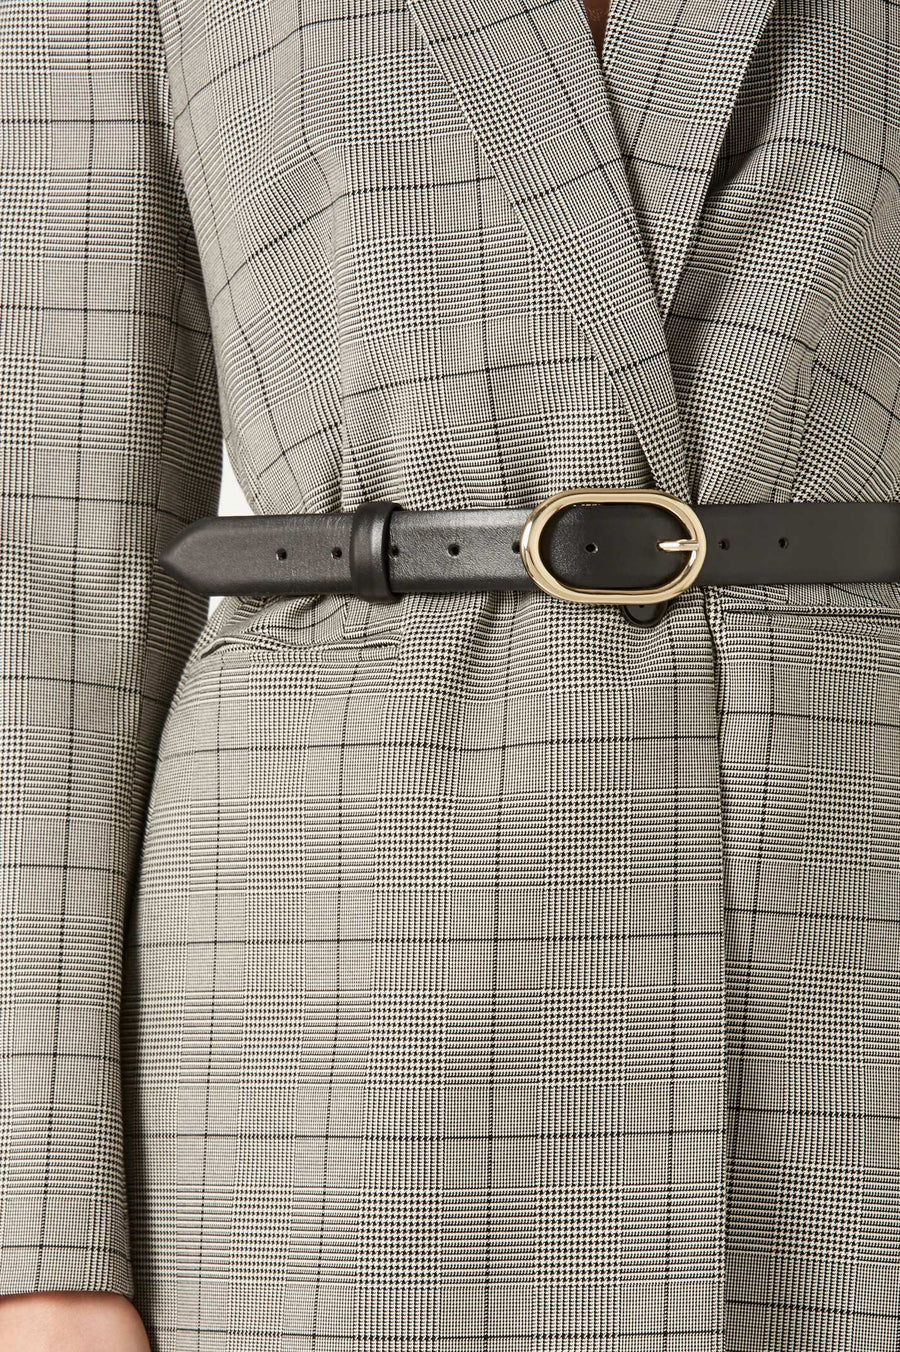 Crafted in Italy from luxuriously soft leather and embellished with a sleek gold buckle.